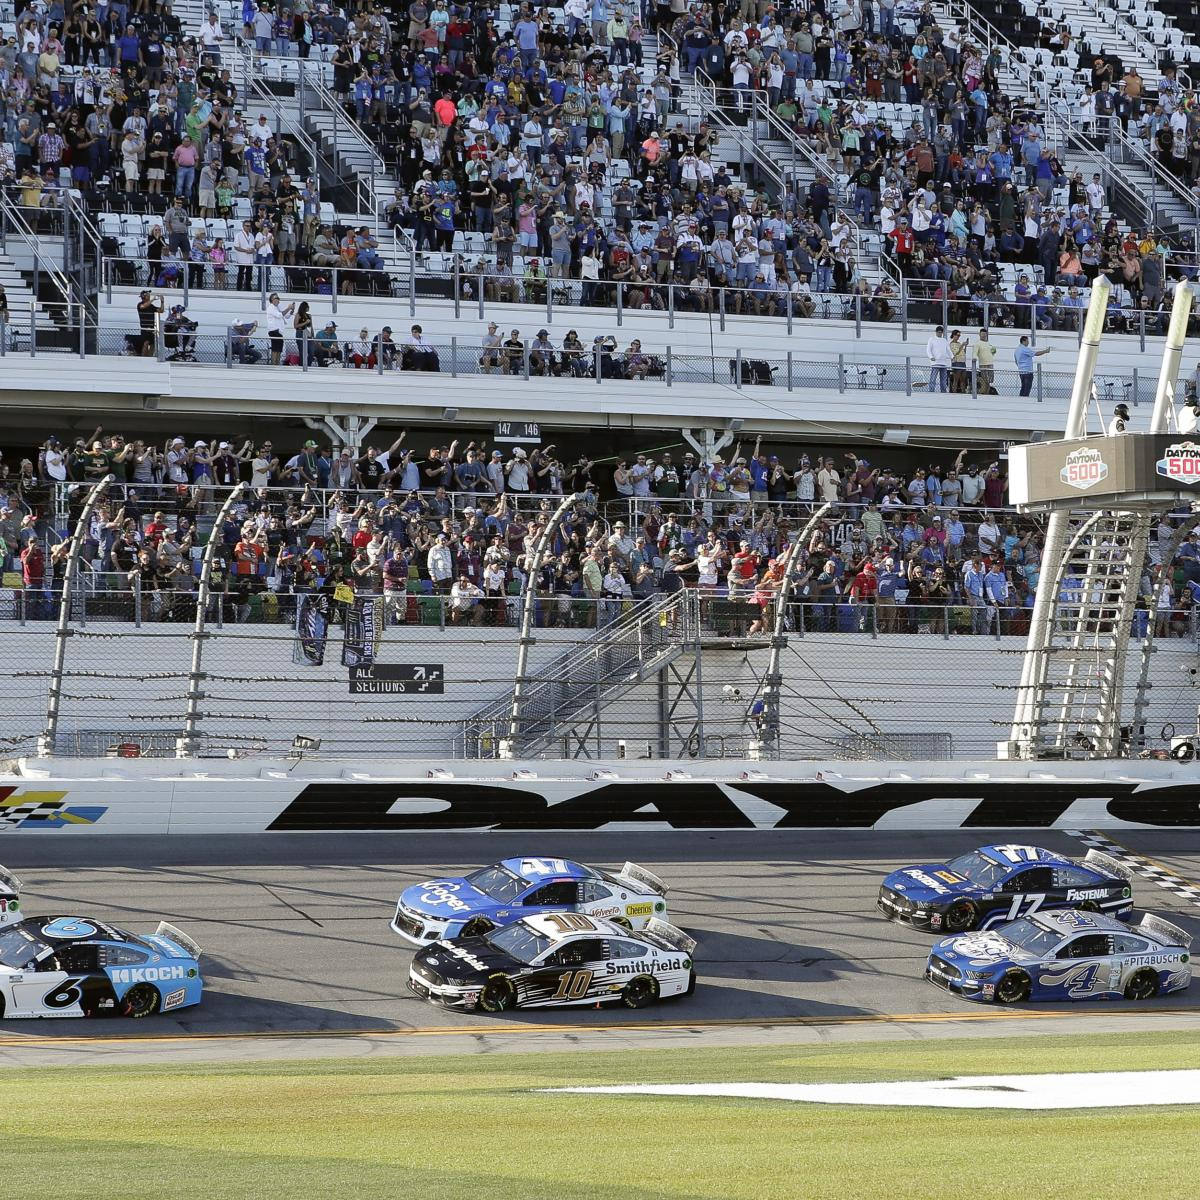 Daytona 500 Expecting 30k Fans: 'Largest Sporting Event' in US Since COVID Hit thumbnail